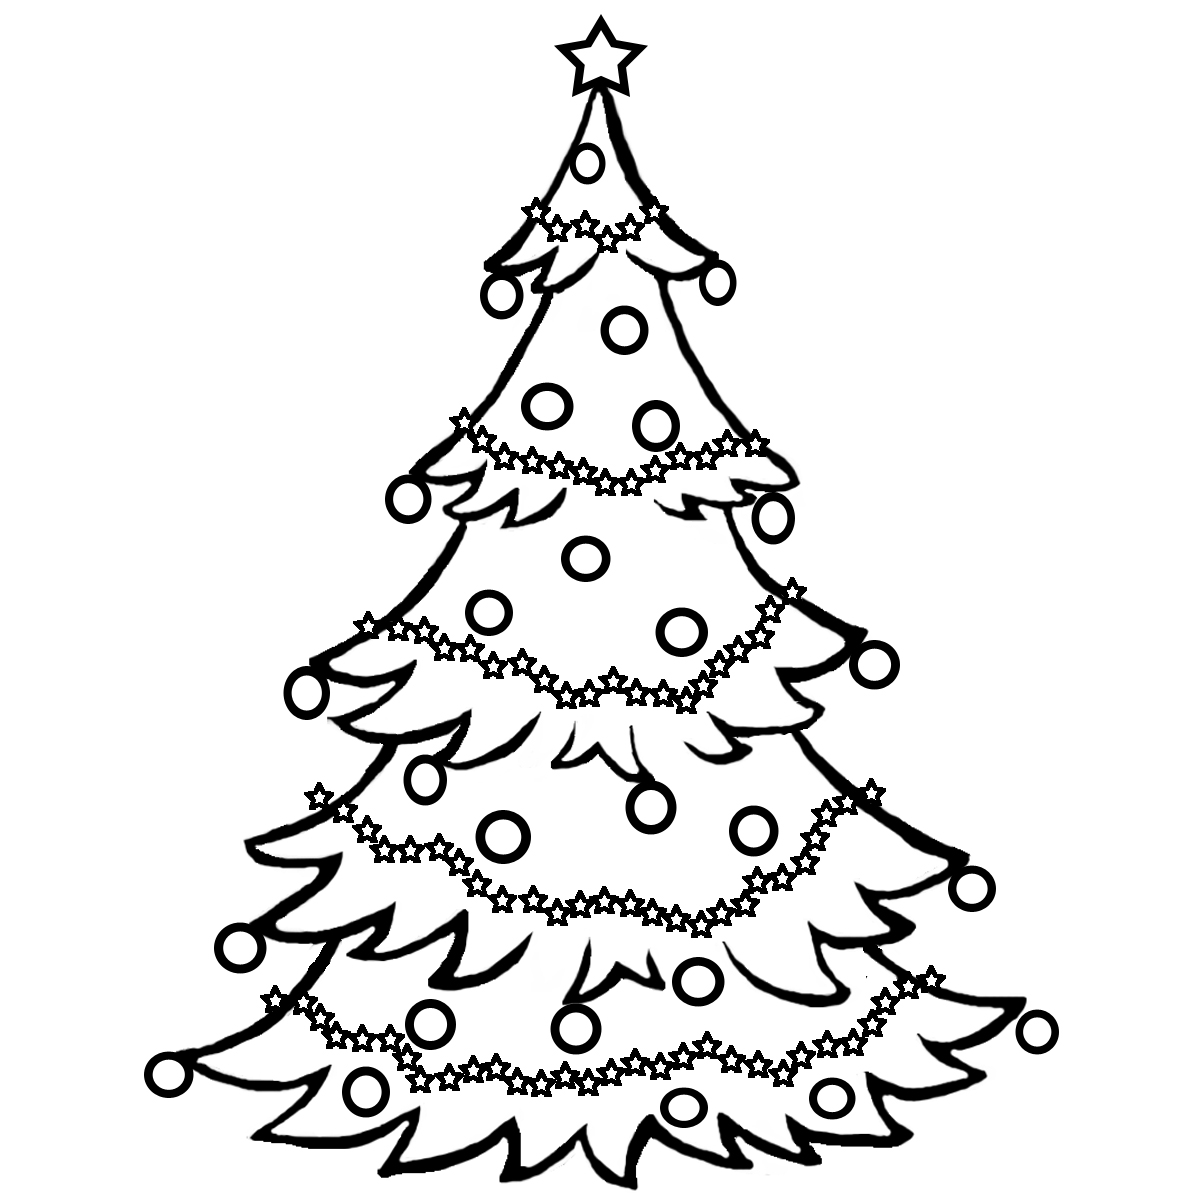 Simple christmas decorations clipart black and white.